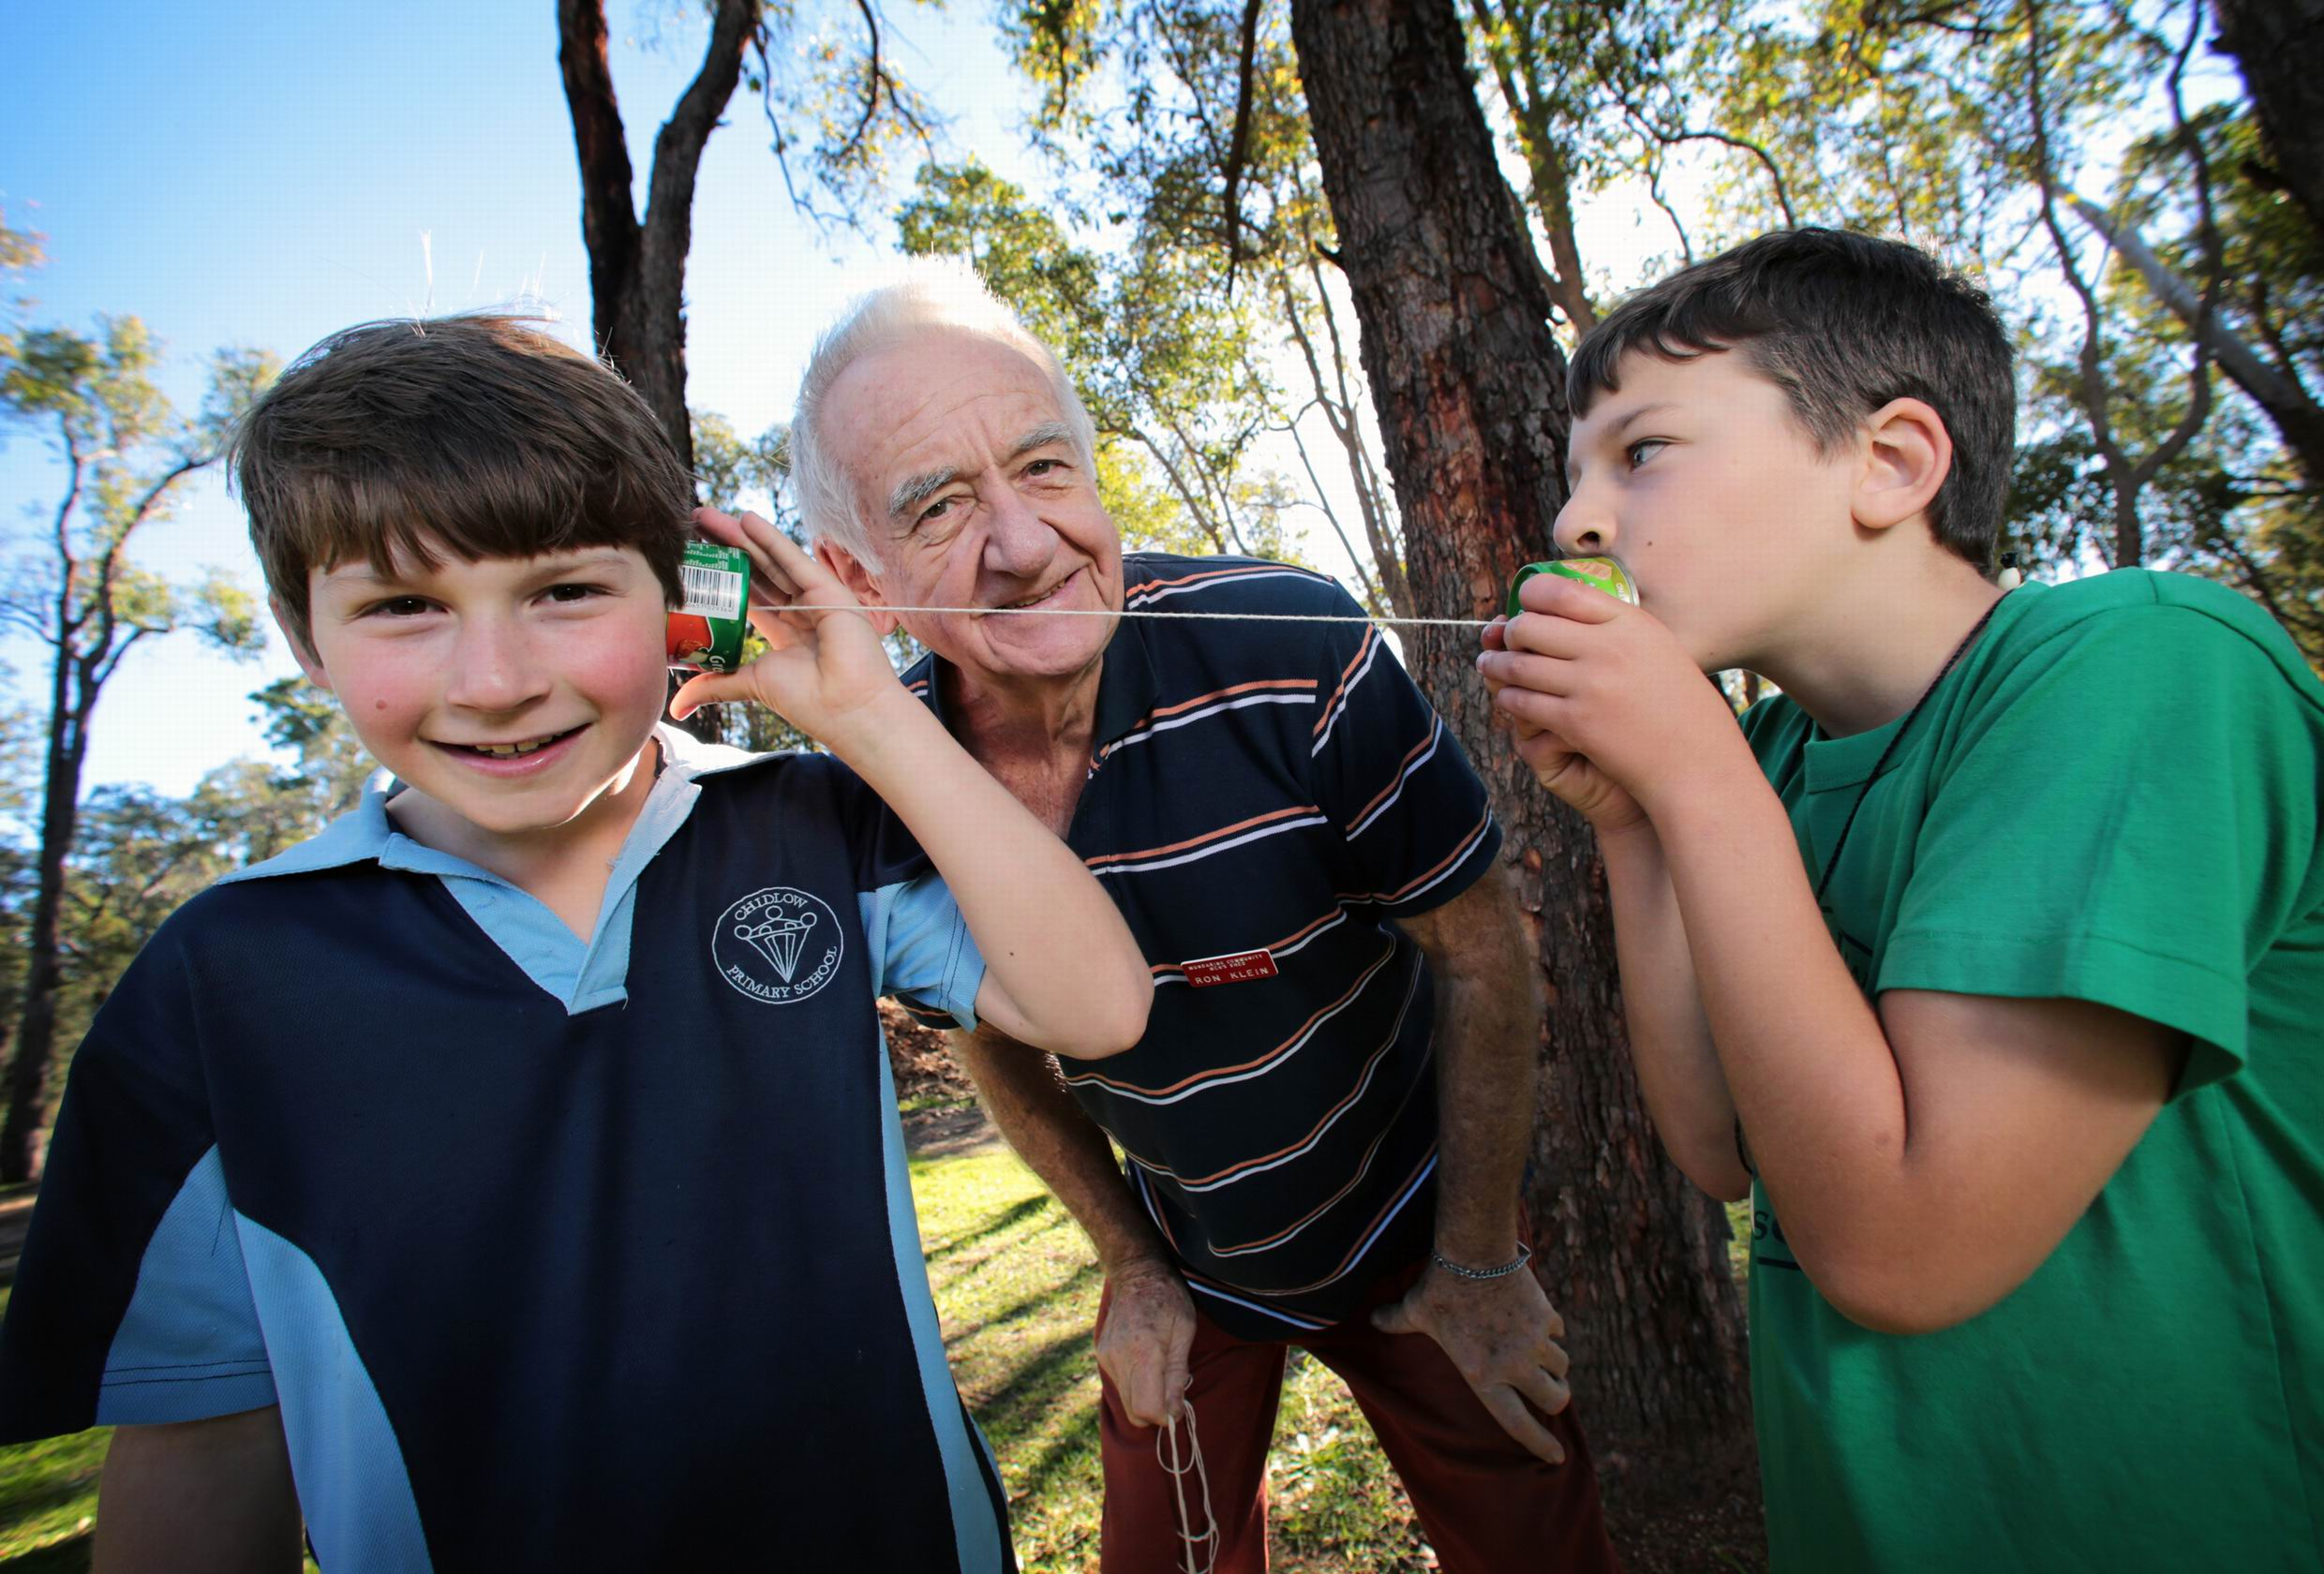 L-R: Cody O'Brien (10) of Chidlow, Ron Klein from the Mundaring Men's Shed and Zayne Campbell (9) of Chidlow, playing with old style toys made by the Mundaring Men's shed, which includes a tin can telephone.  Earth Day fun at Chidlow Primary School.